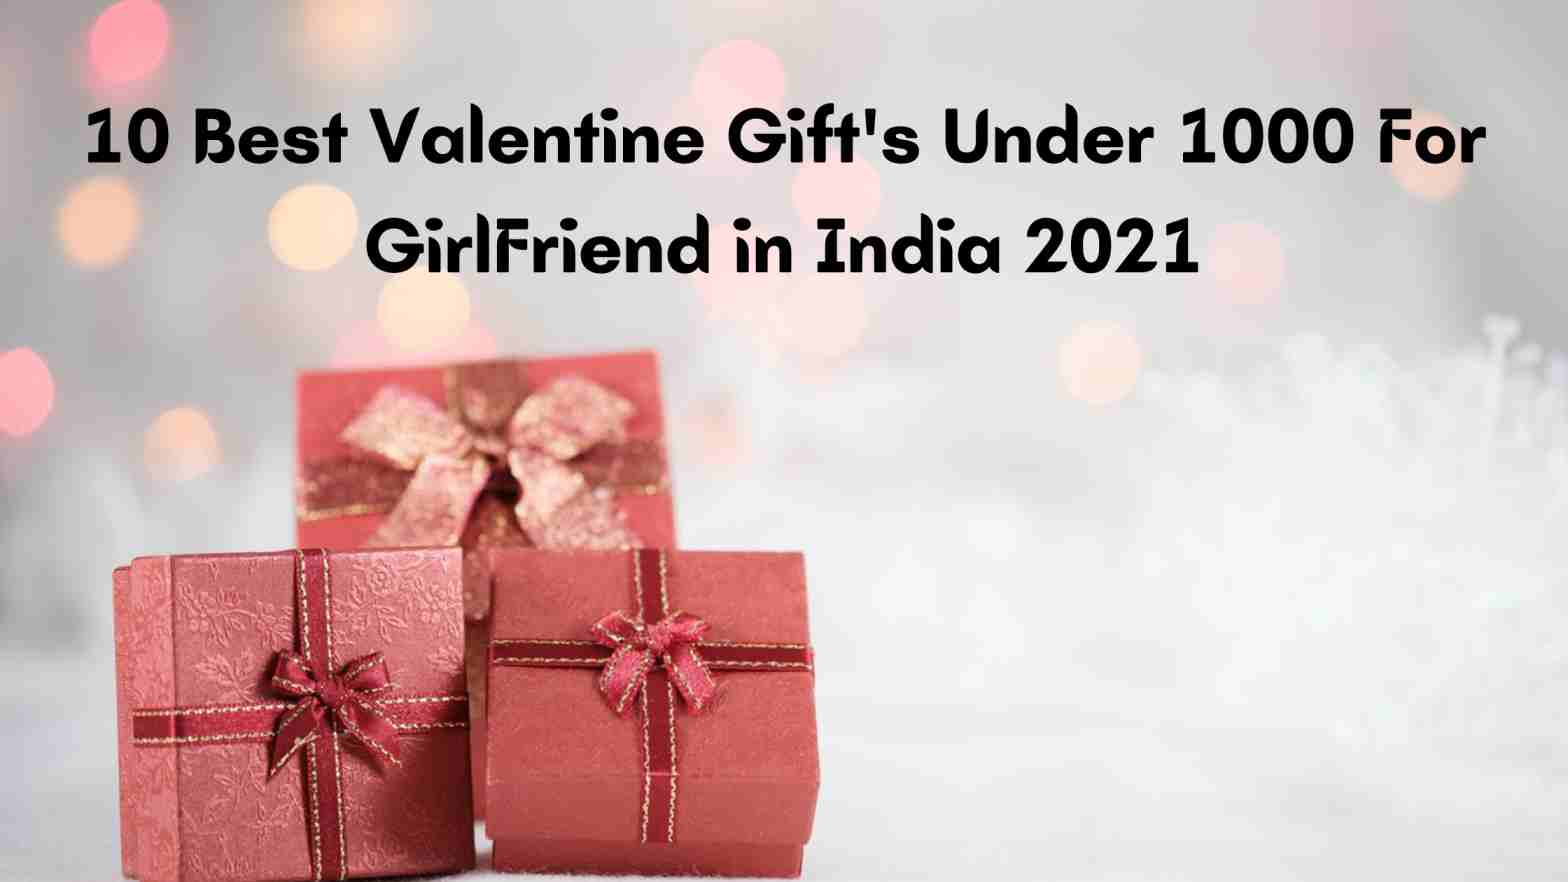 Top 10 Best Gift's For GirlFriend Under 1000 in India 2021